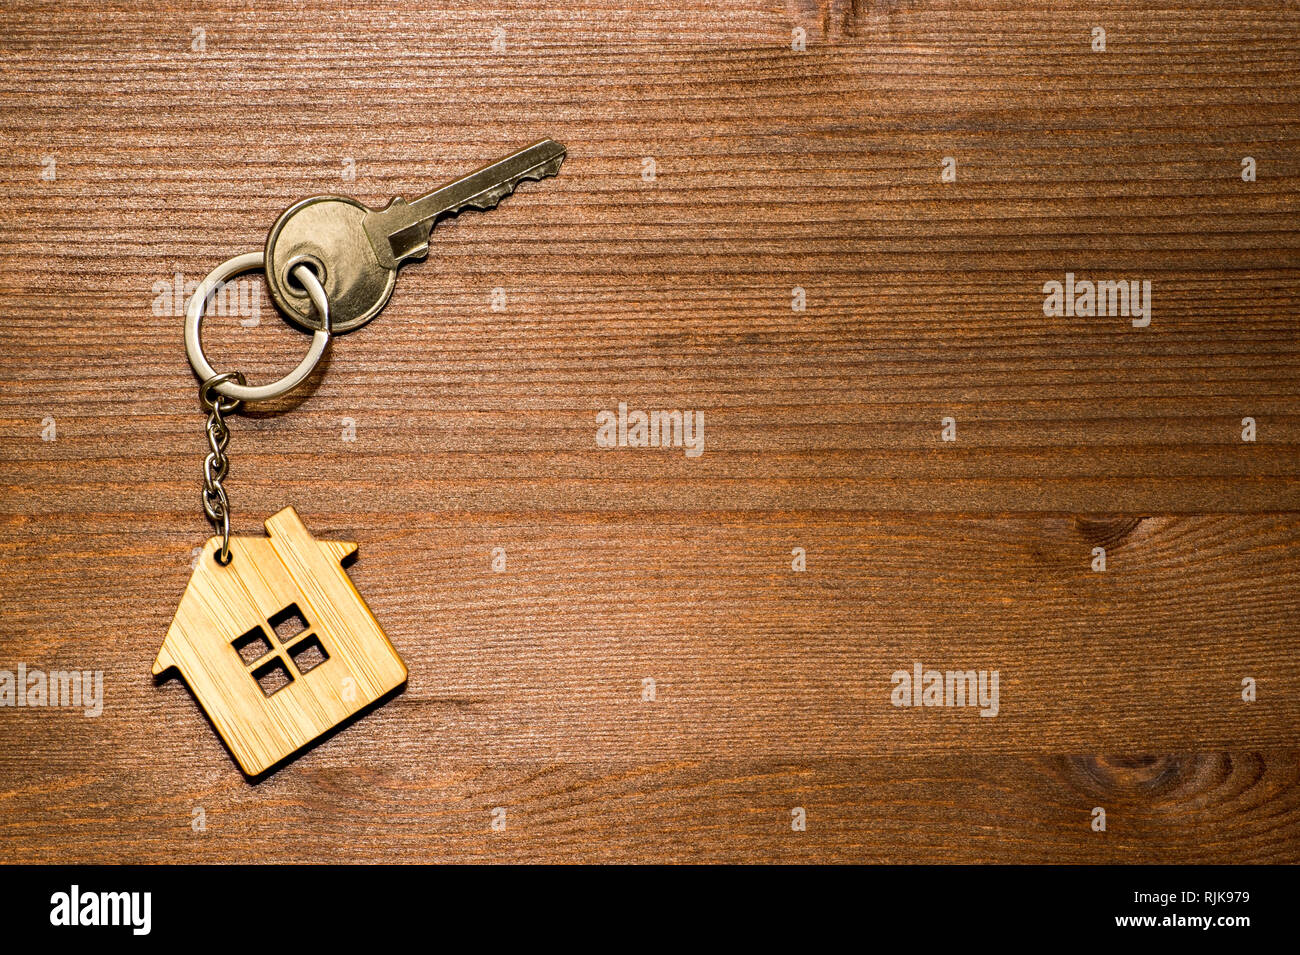 Symbol of a bamboo house with a metal key on a brown vintage wooden background. Lighting gradient. The concept of selling real estate with the transfe - Stock Image